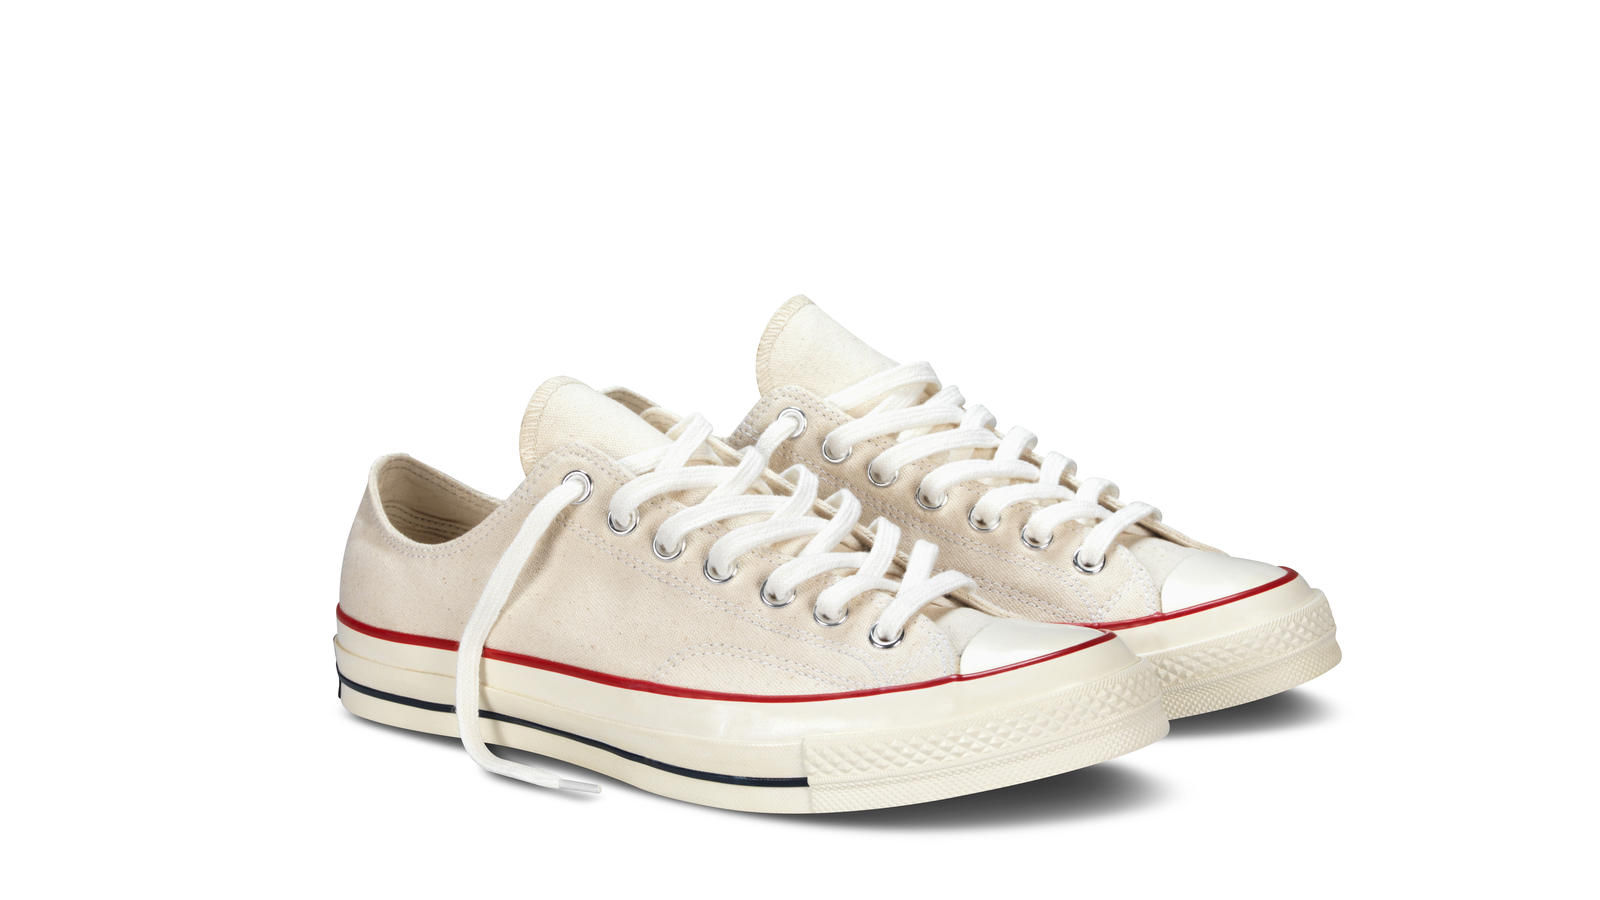 Converse 1970s Chuck Taylor All Star White Pair Diag Original